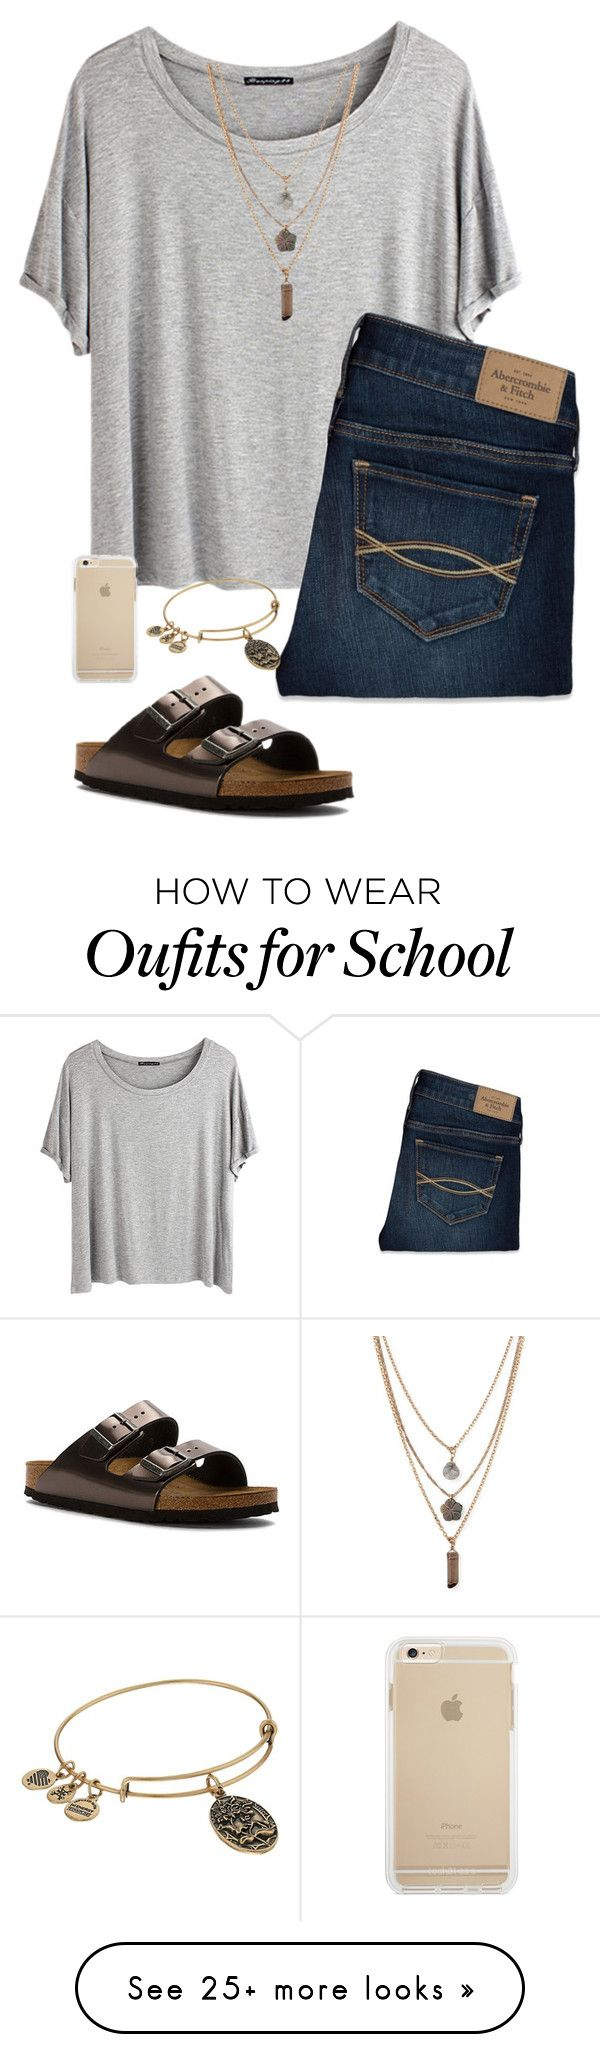 """I don't want school"" by eadurbala08 on Polyvore featuring Chicnova Fashion, Abercrombie & Fitch, Birkenstock, Forever 21 and Alex and Ani"